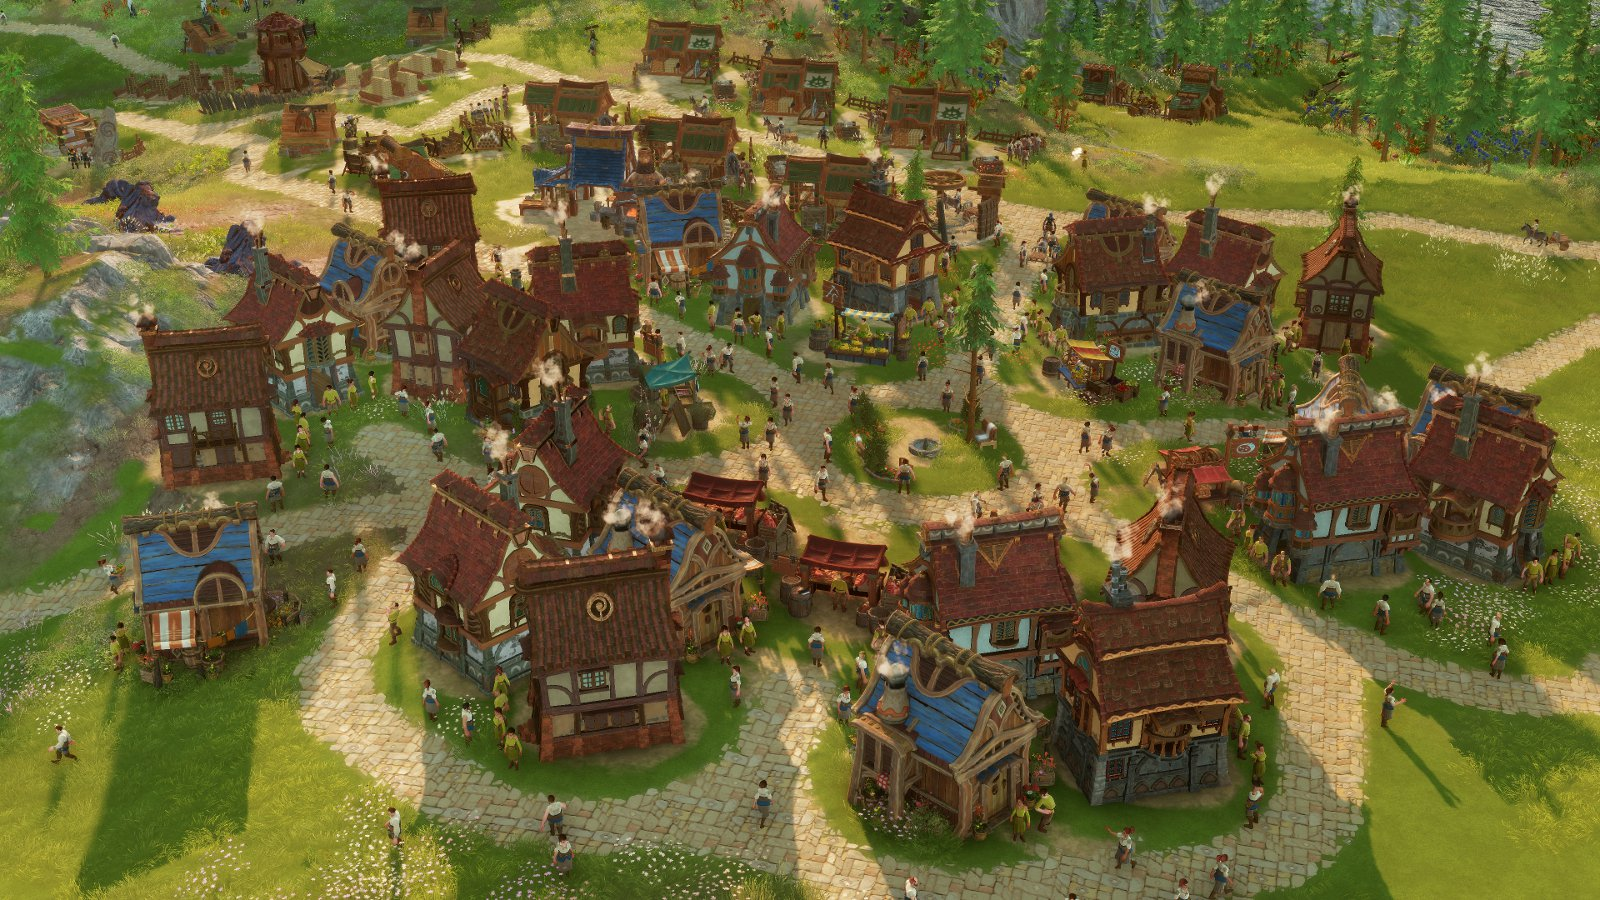 TSR_Screenshot_Town_2_1.600x900.jpg